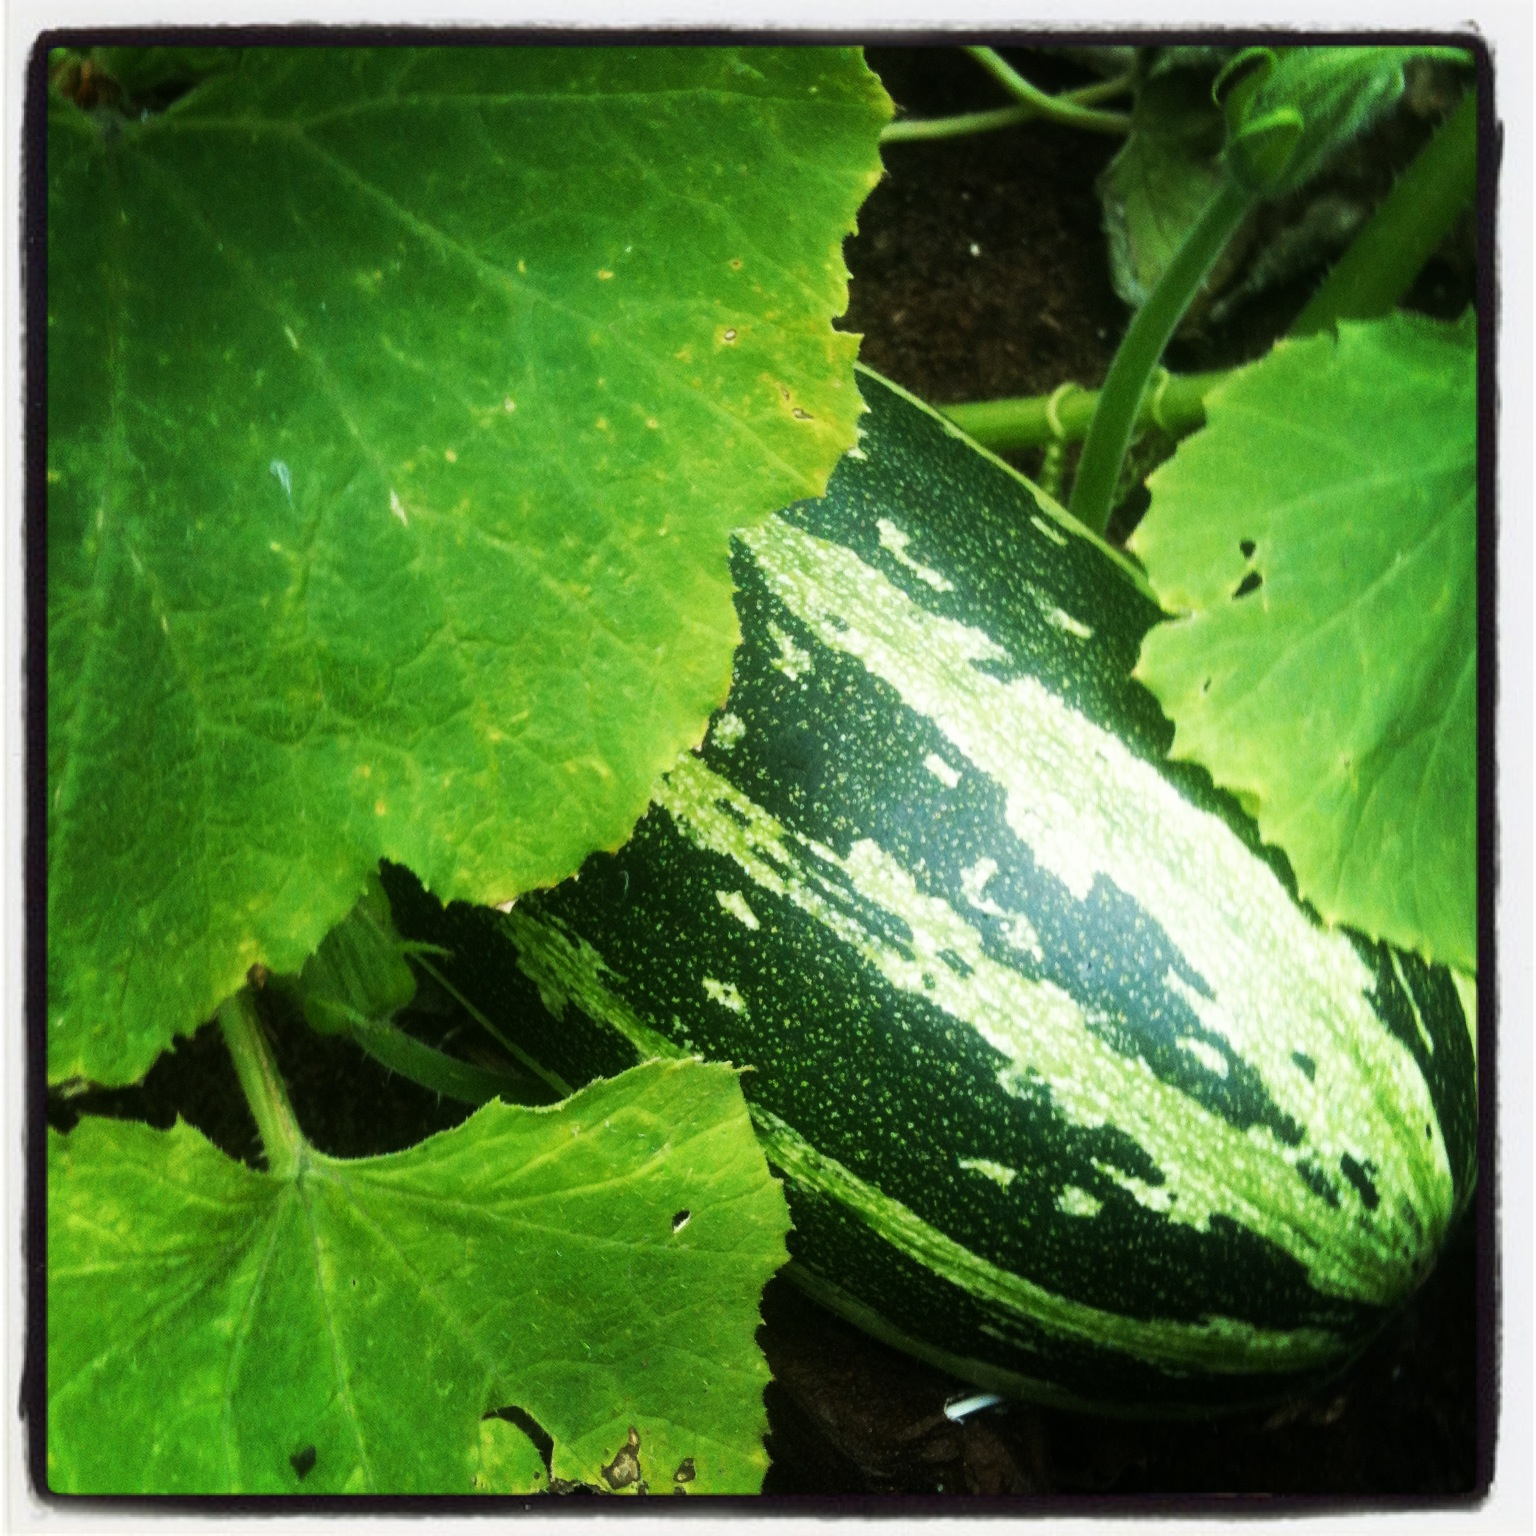 Wartime Garden Harvest Month Update The Crops That Never Were Life On Pig Row